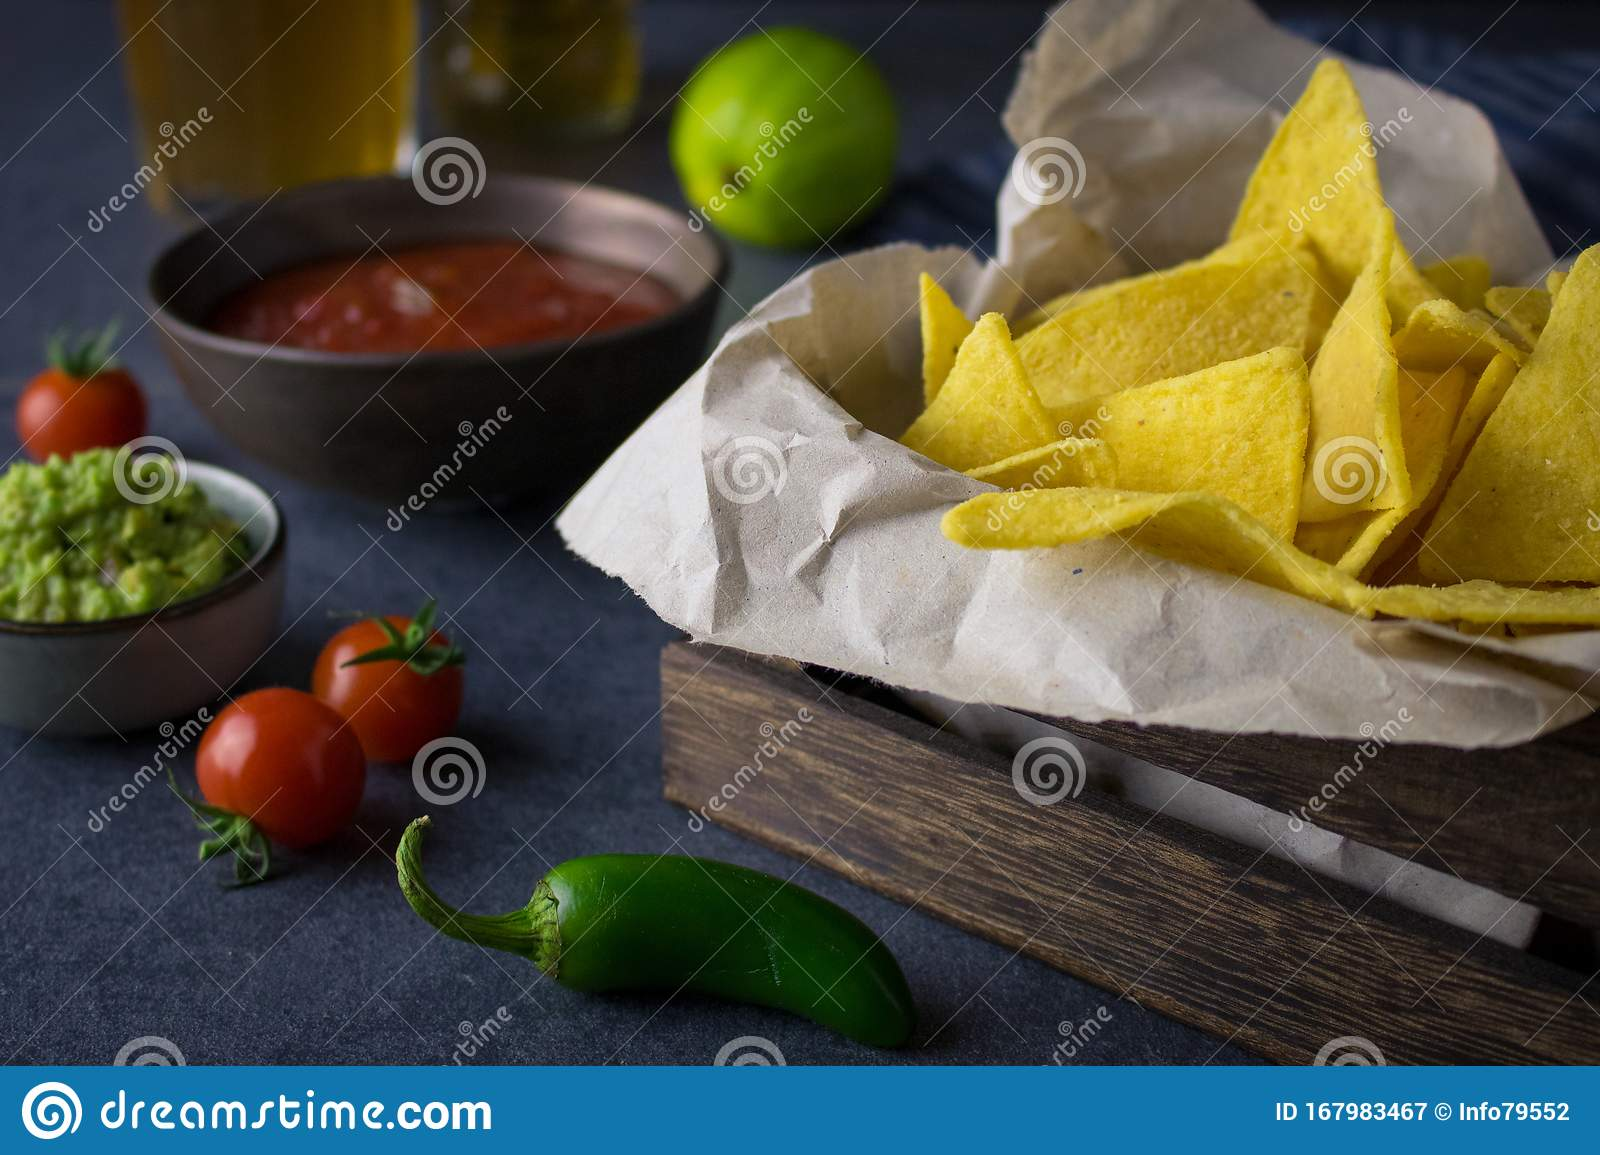 Nachos With Salsa And Beer Stock Image Image Of Diet 167983467